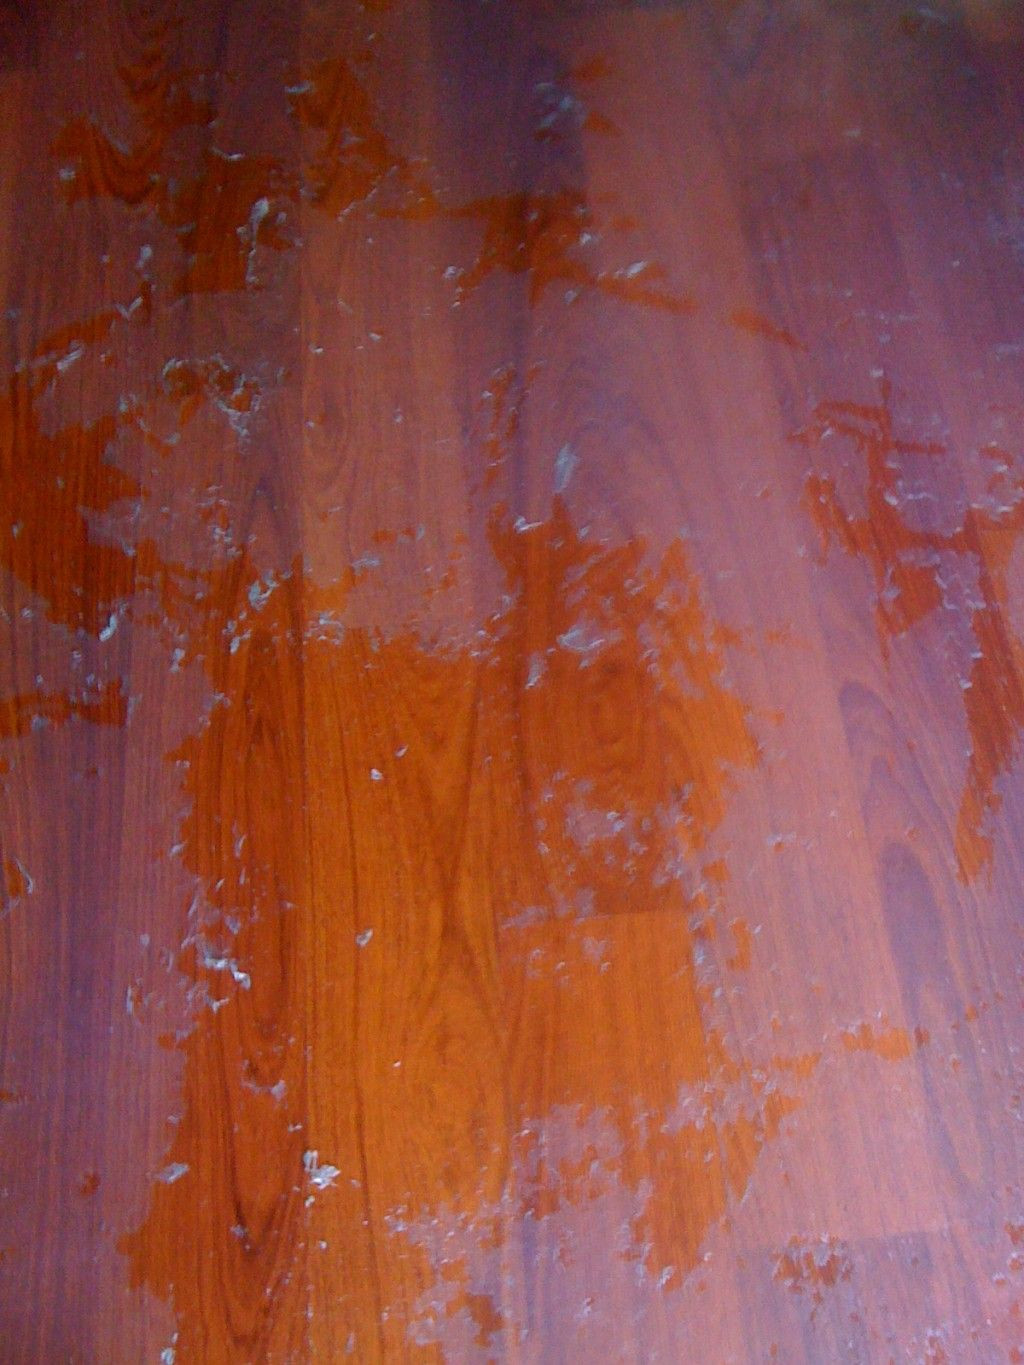 hardwood flooring niagara of how to remove wax and oil soap cleaners from wood floors recipes within how to remove oily or wax build up from cleaning or polishing solutions from wood floors